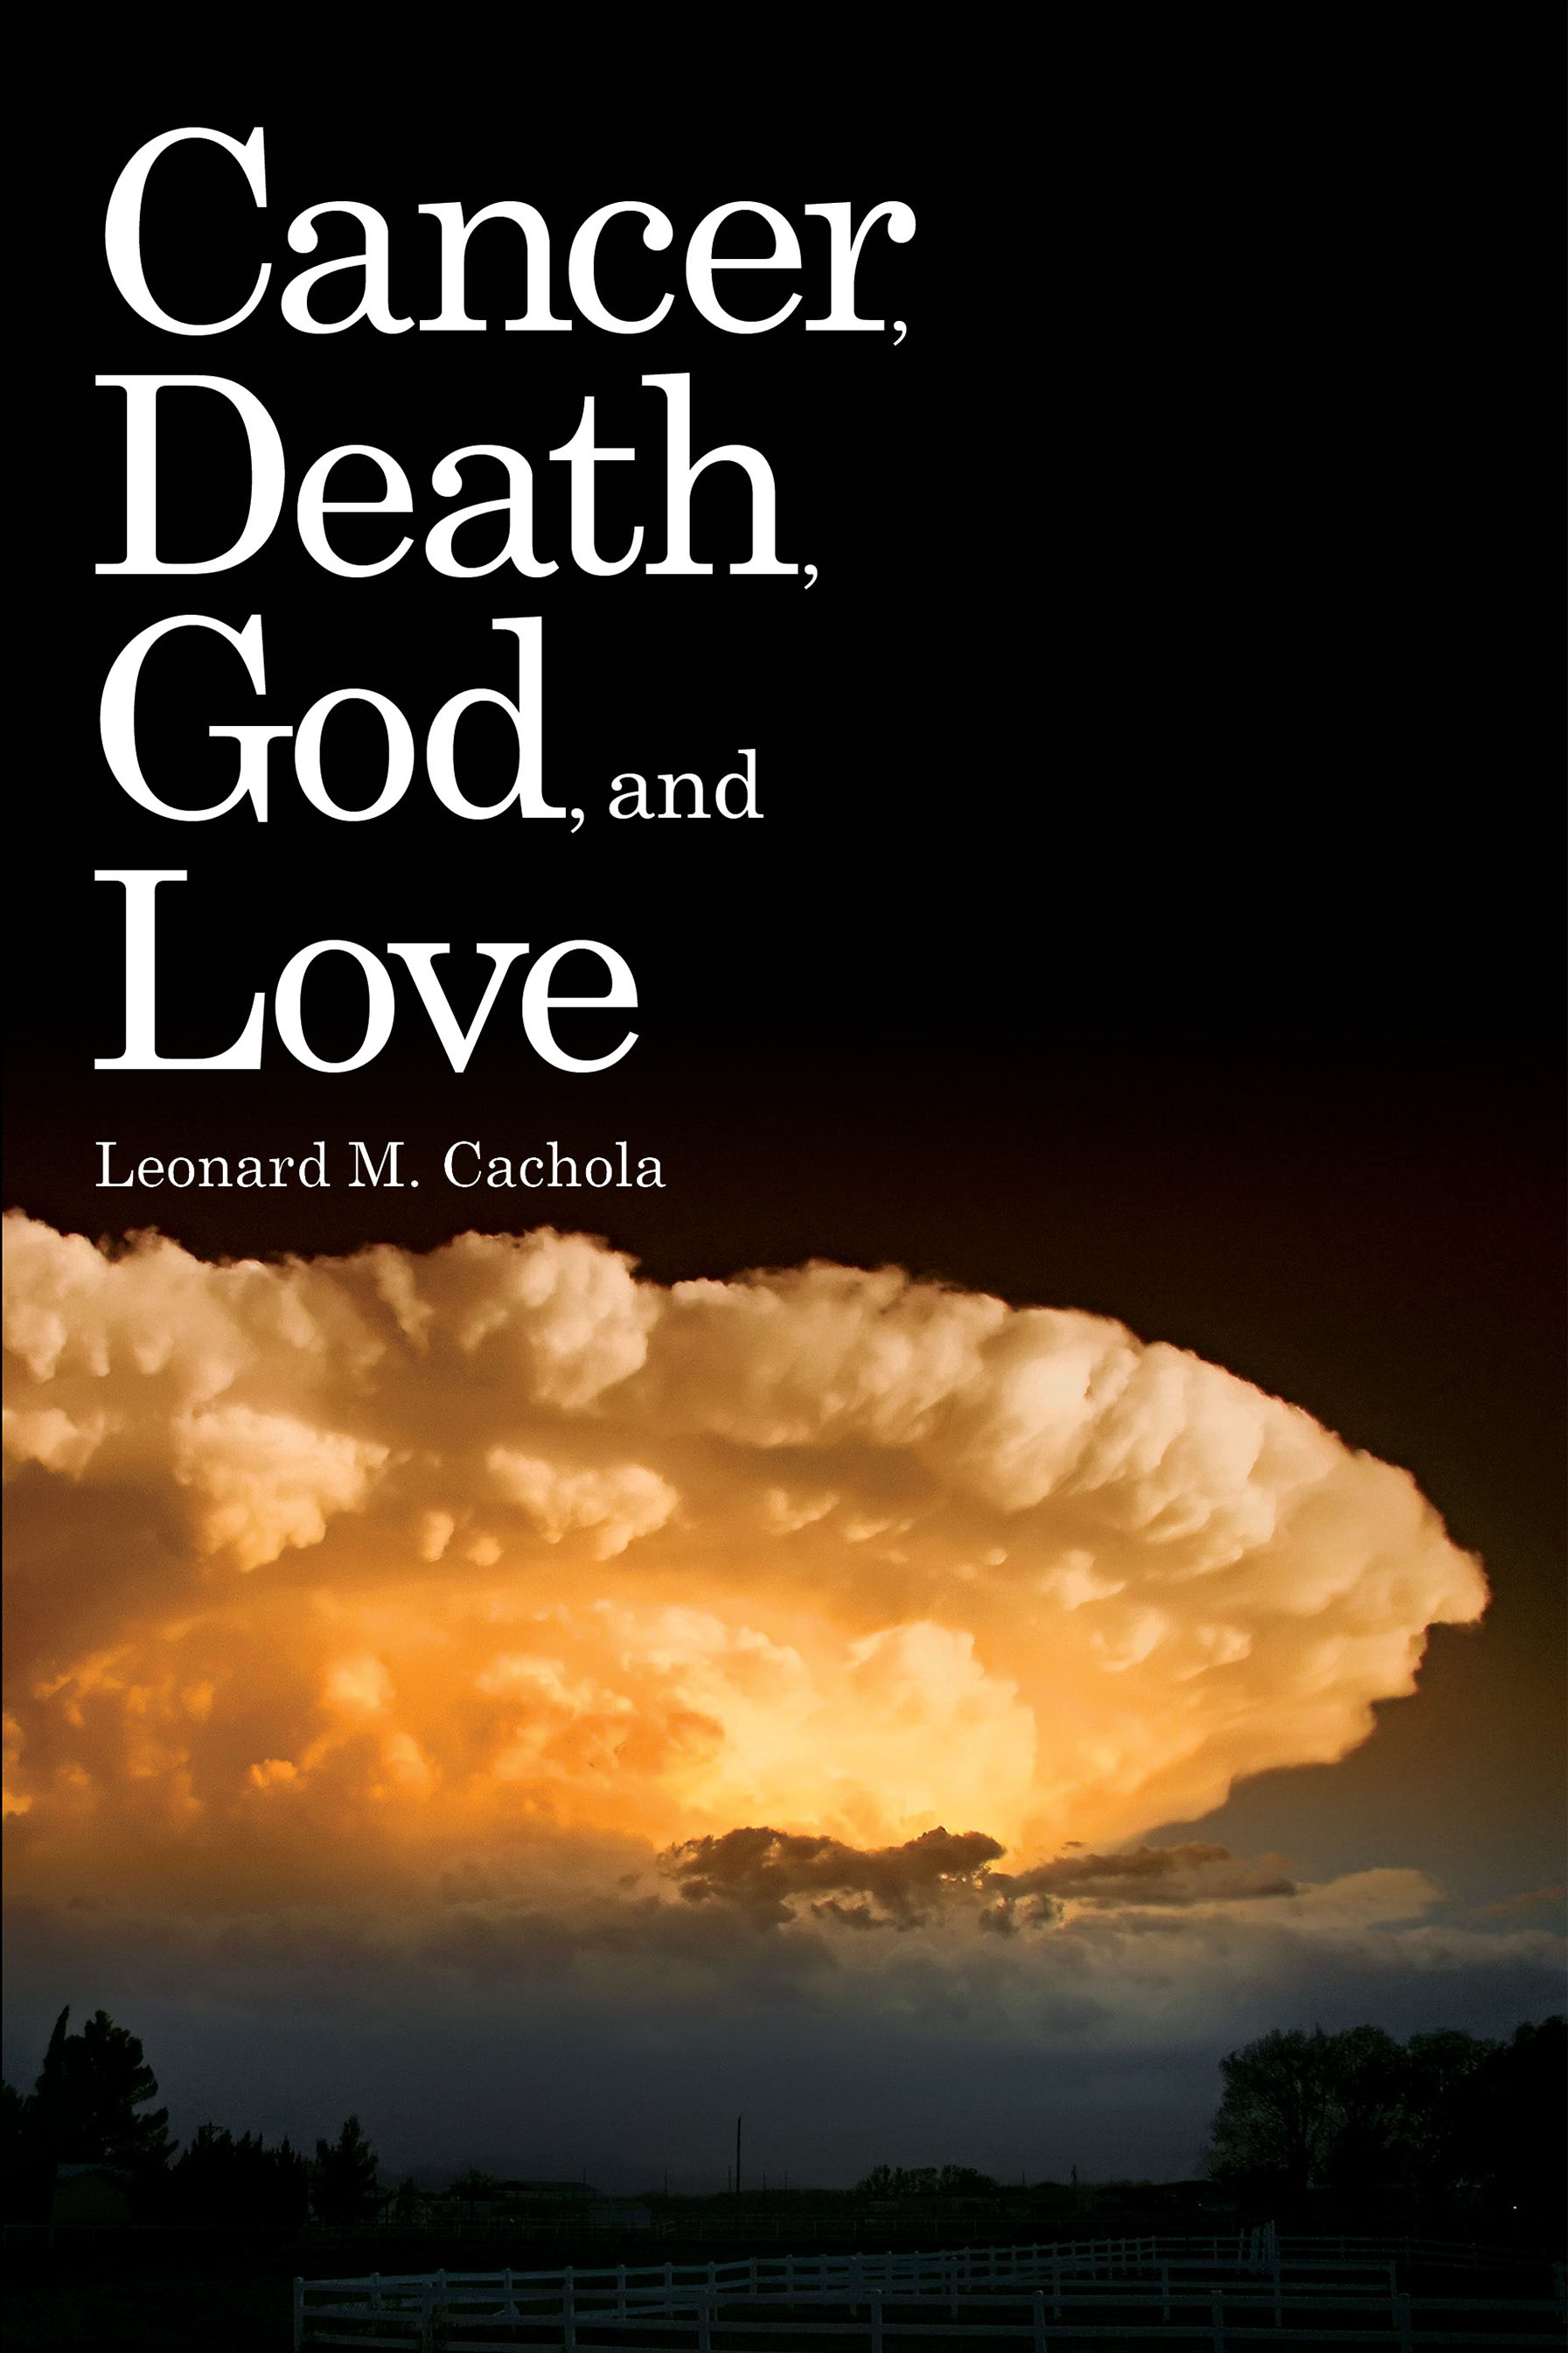 Cancer_Death_God_and_Love_Cover.indd